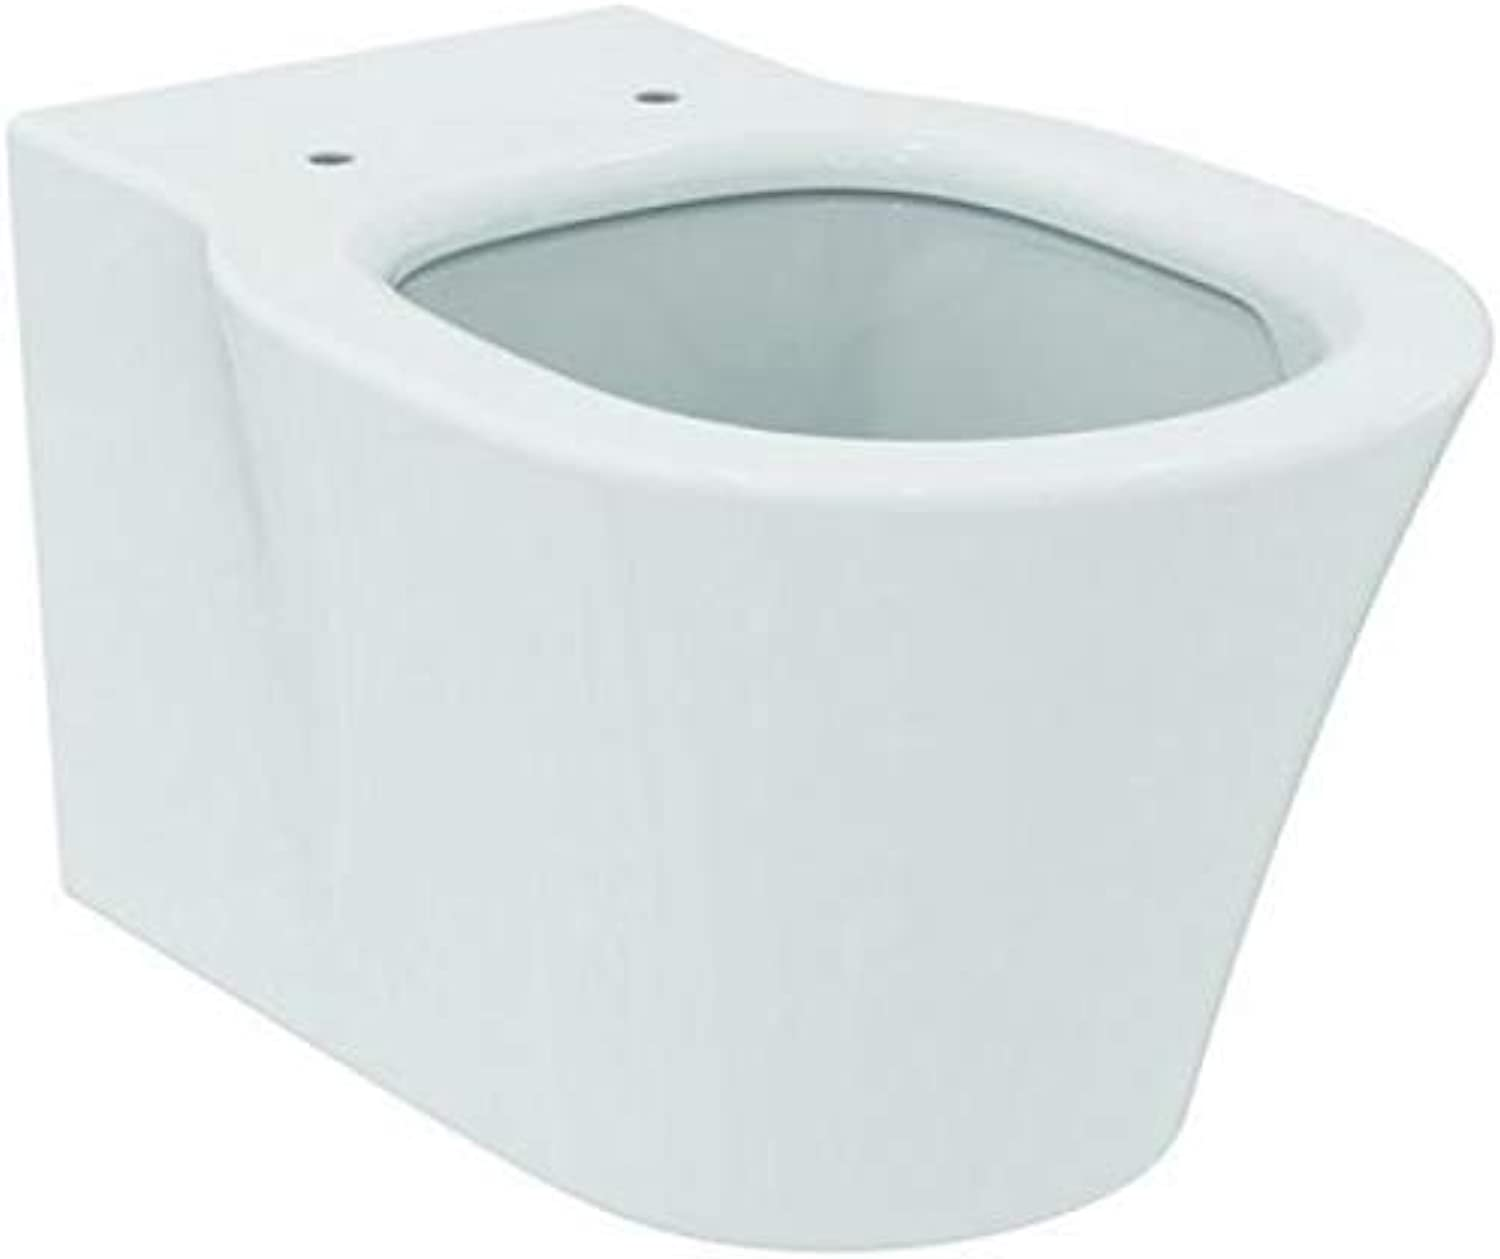 Ideal Standard Wand-T-WC CONNECT AIR, AquaBlade, unsichtbare Befür, 360x540x350mm, Wei IP, E0054MA